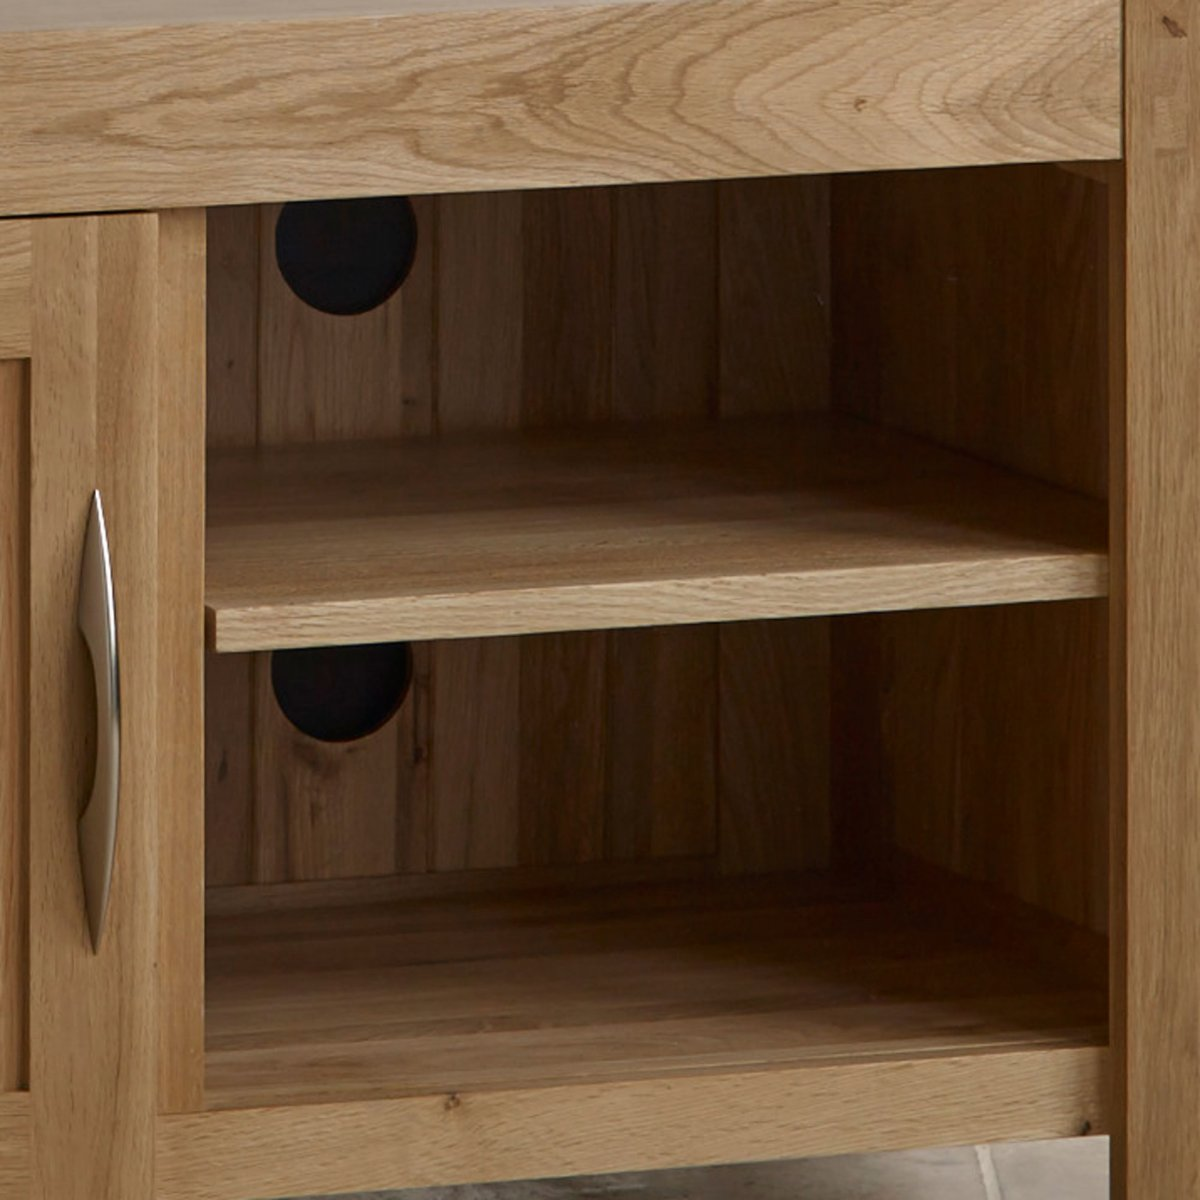 Alton oak corner cabinet oak furniture solutions - Alto Natural Solid Oak Small Tv Cabinet Sorry Your Browser Does Not Support This Video